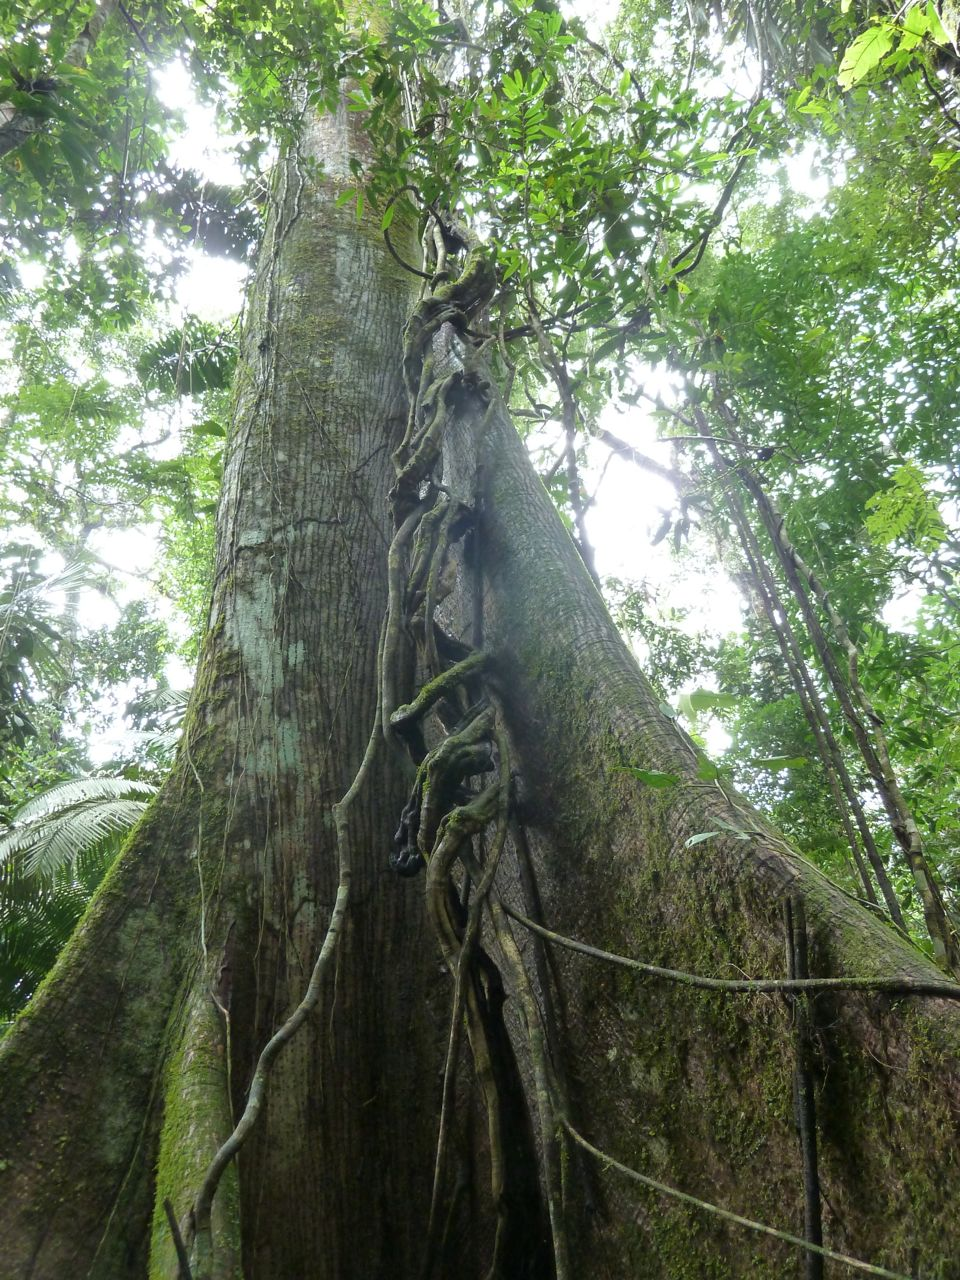 Tree in the Amazon